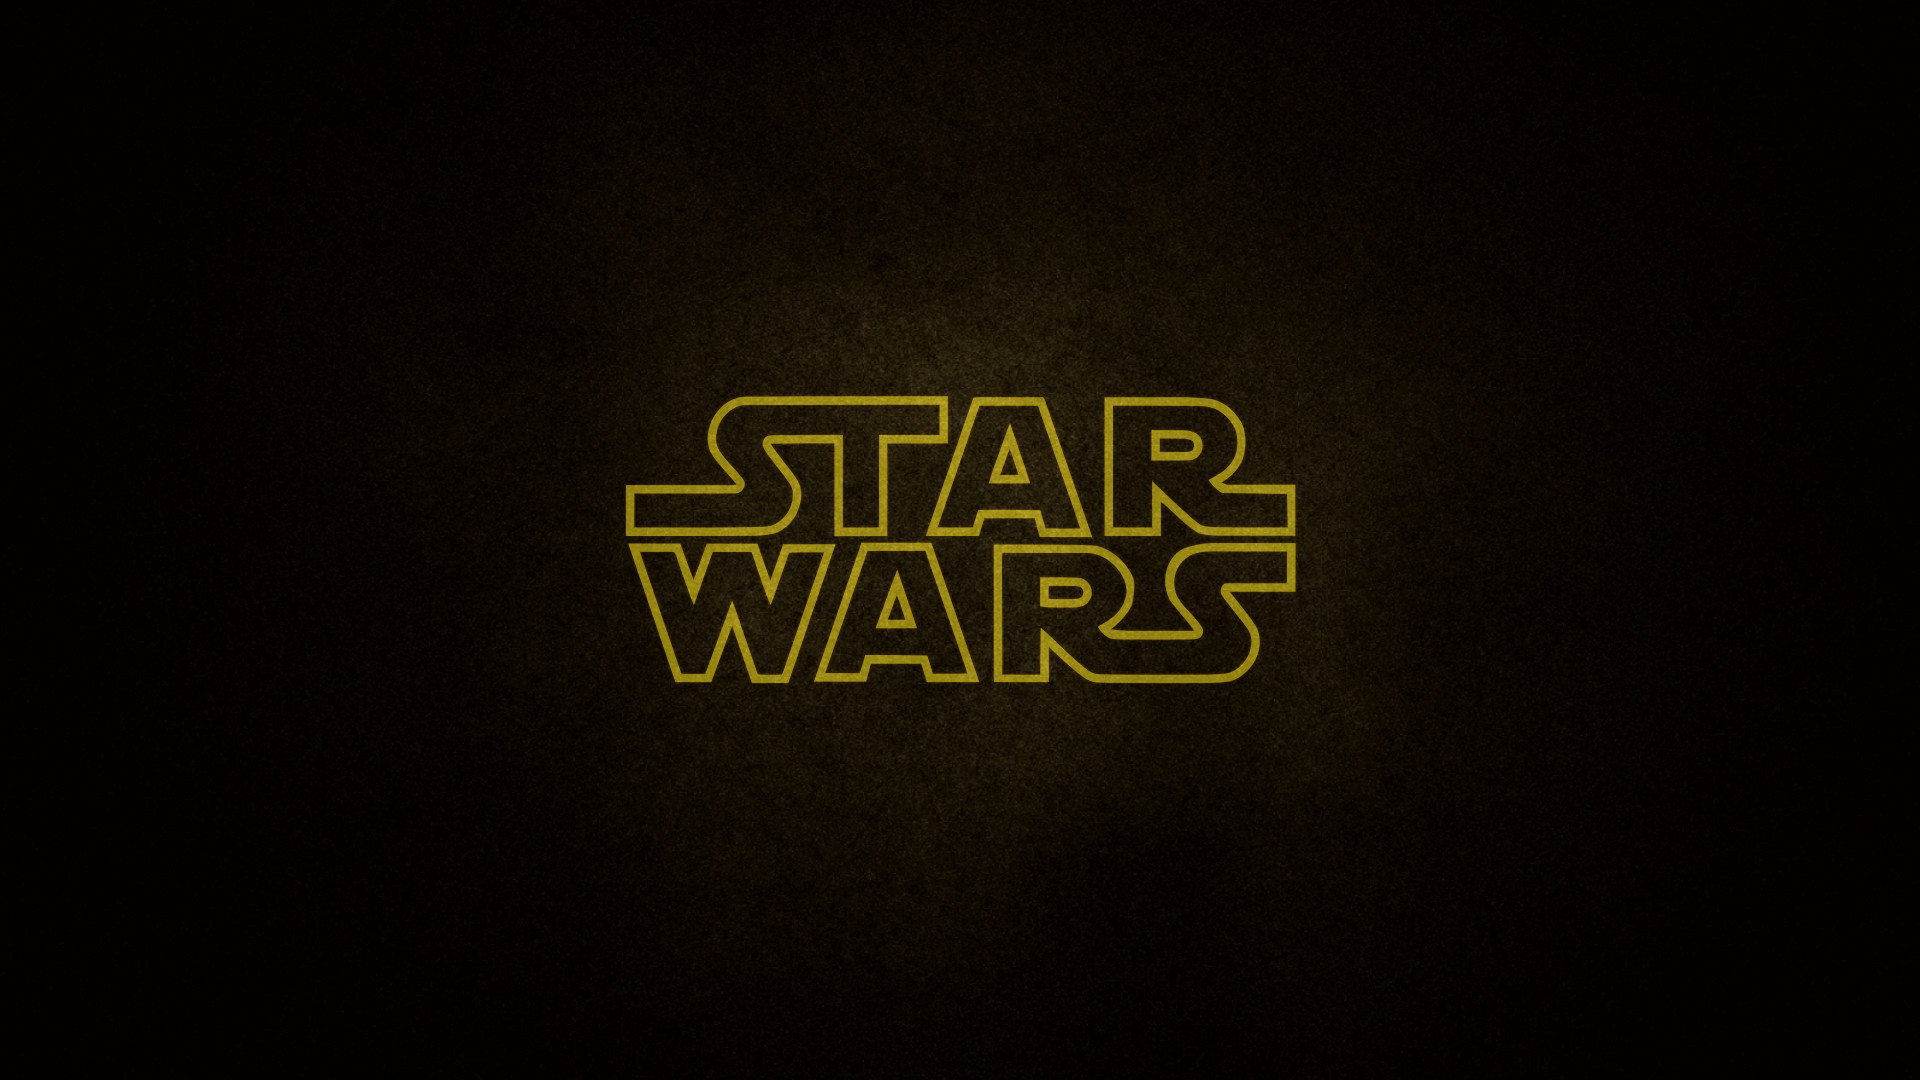 564 Star Wars HD Wallpapers   Backgrounds – Wallpaper Abyss